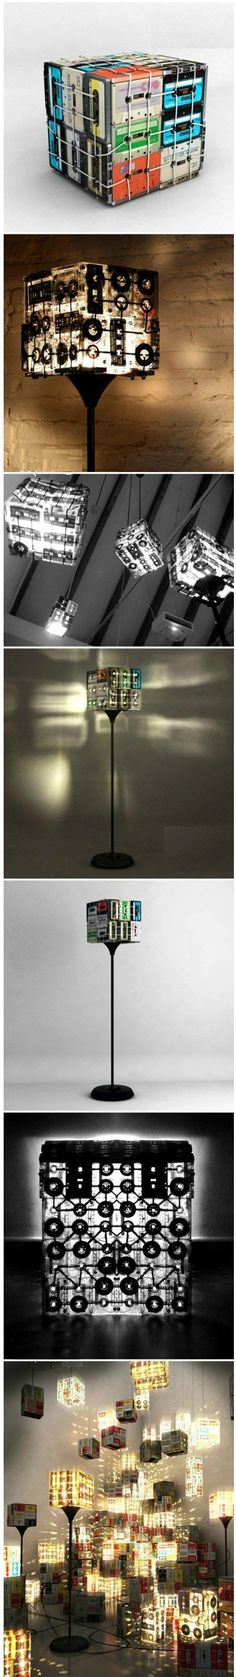 Great Tapes Lamp | DIY & Crafts Tutorials: